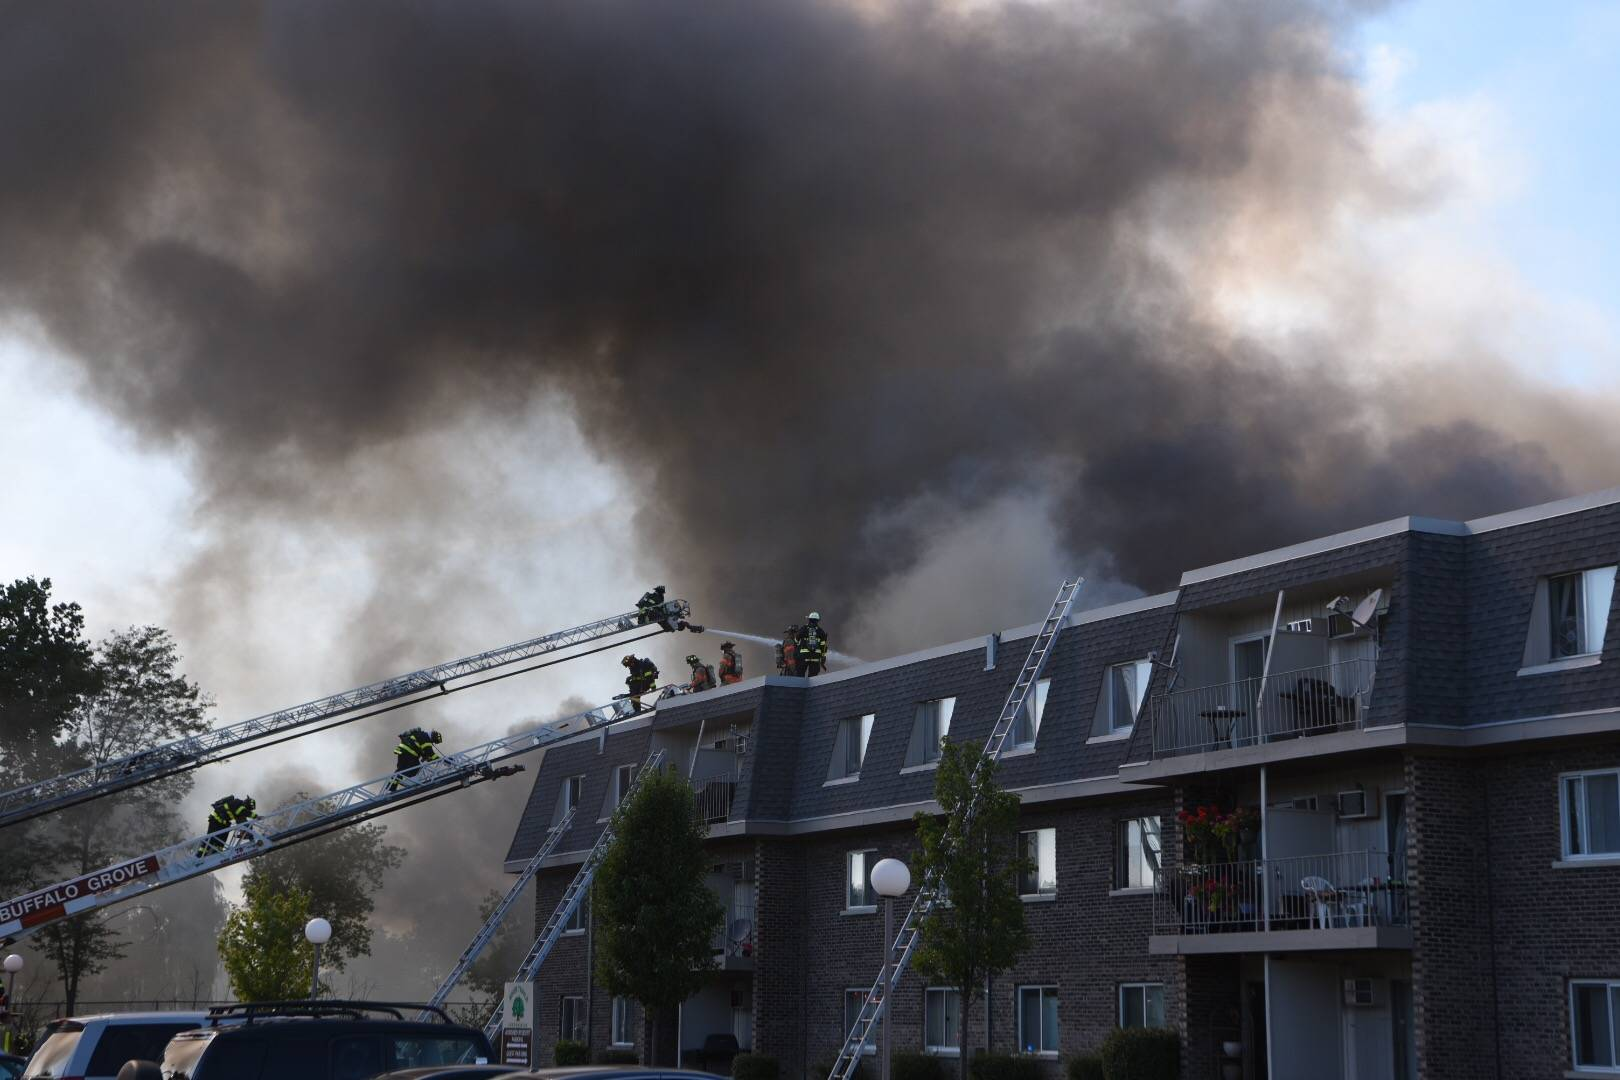 A five-alarm fire Wednesday at a Prospect Heights apartment complex kept about 150 firefighters busy for hours and displaced dozens of residents, officials said. There were three minor injuries reported.